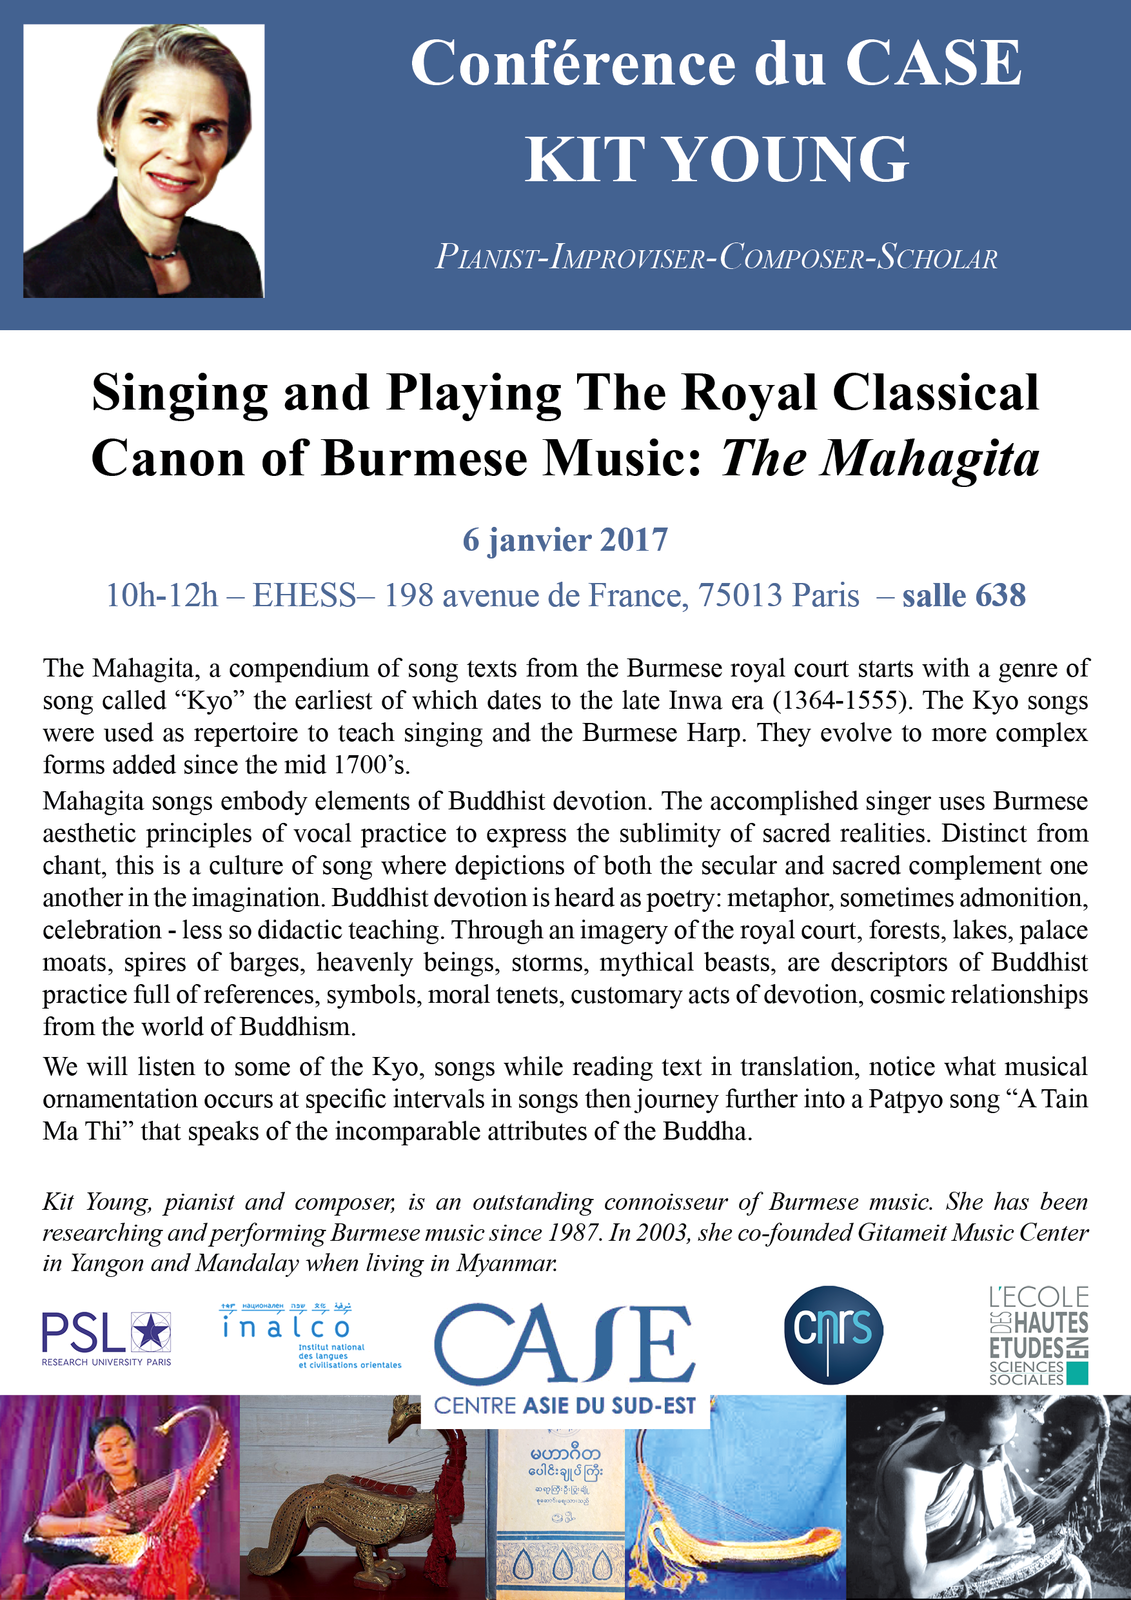 Singing and Playing The Royal Classical Canon of Burmese Music: The Mahagita